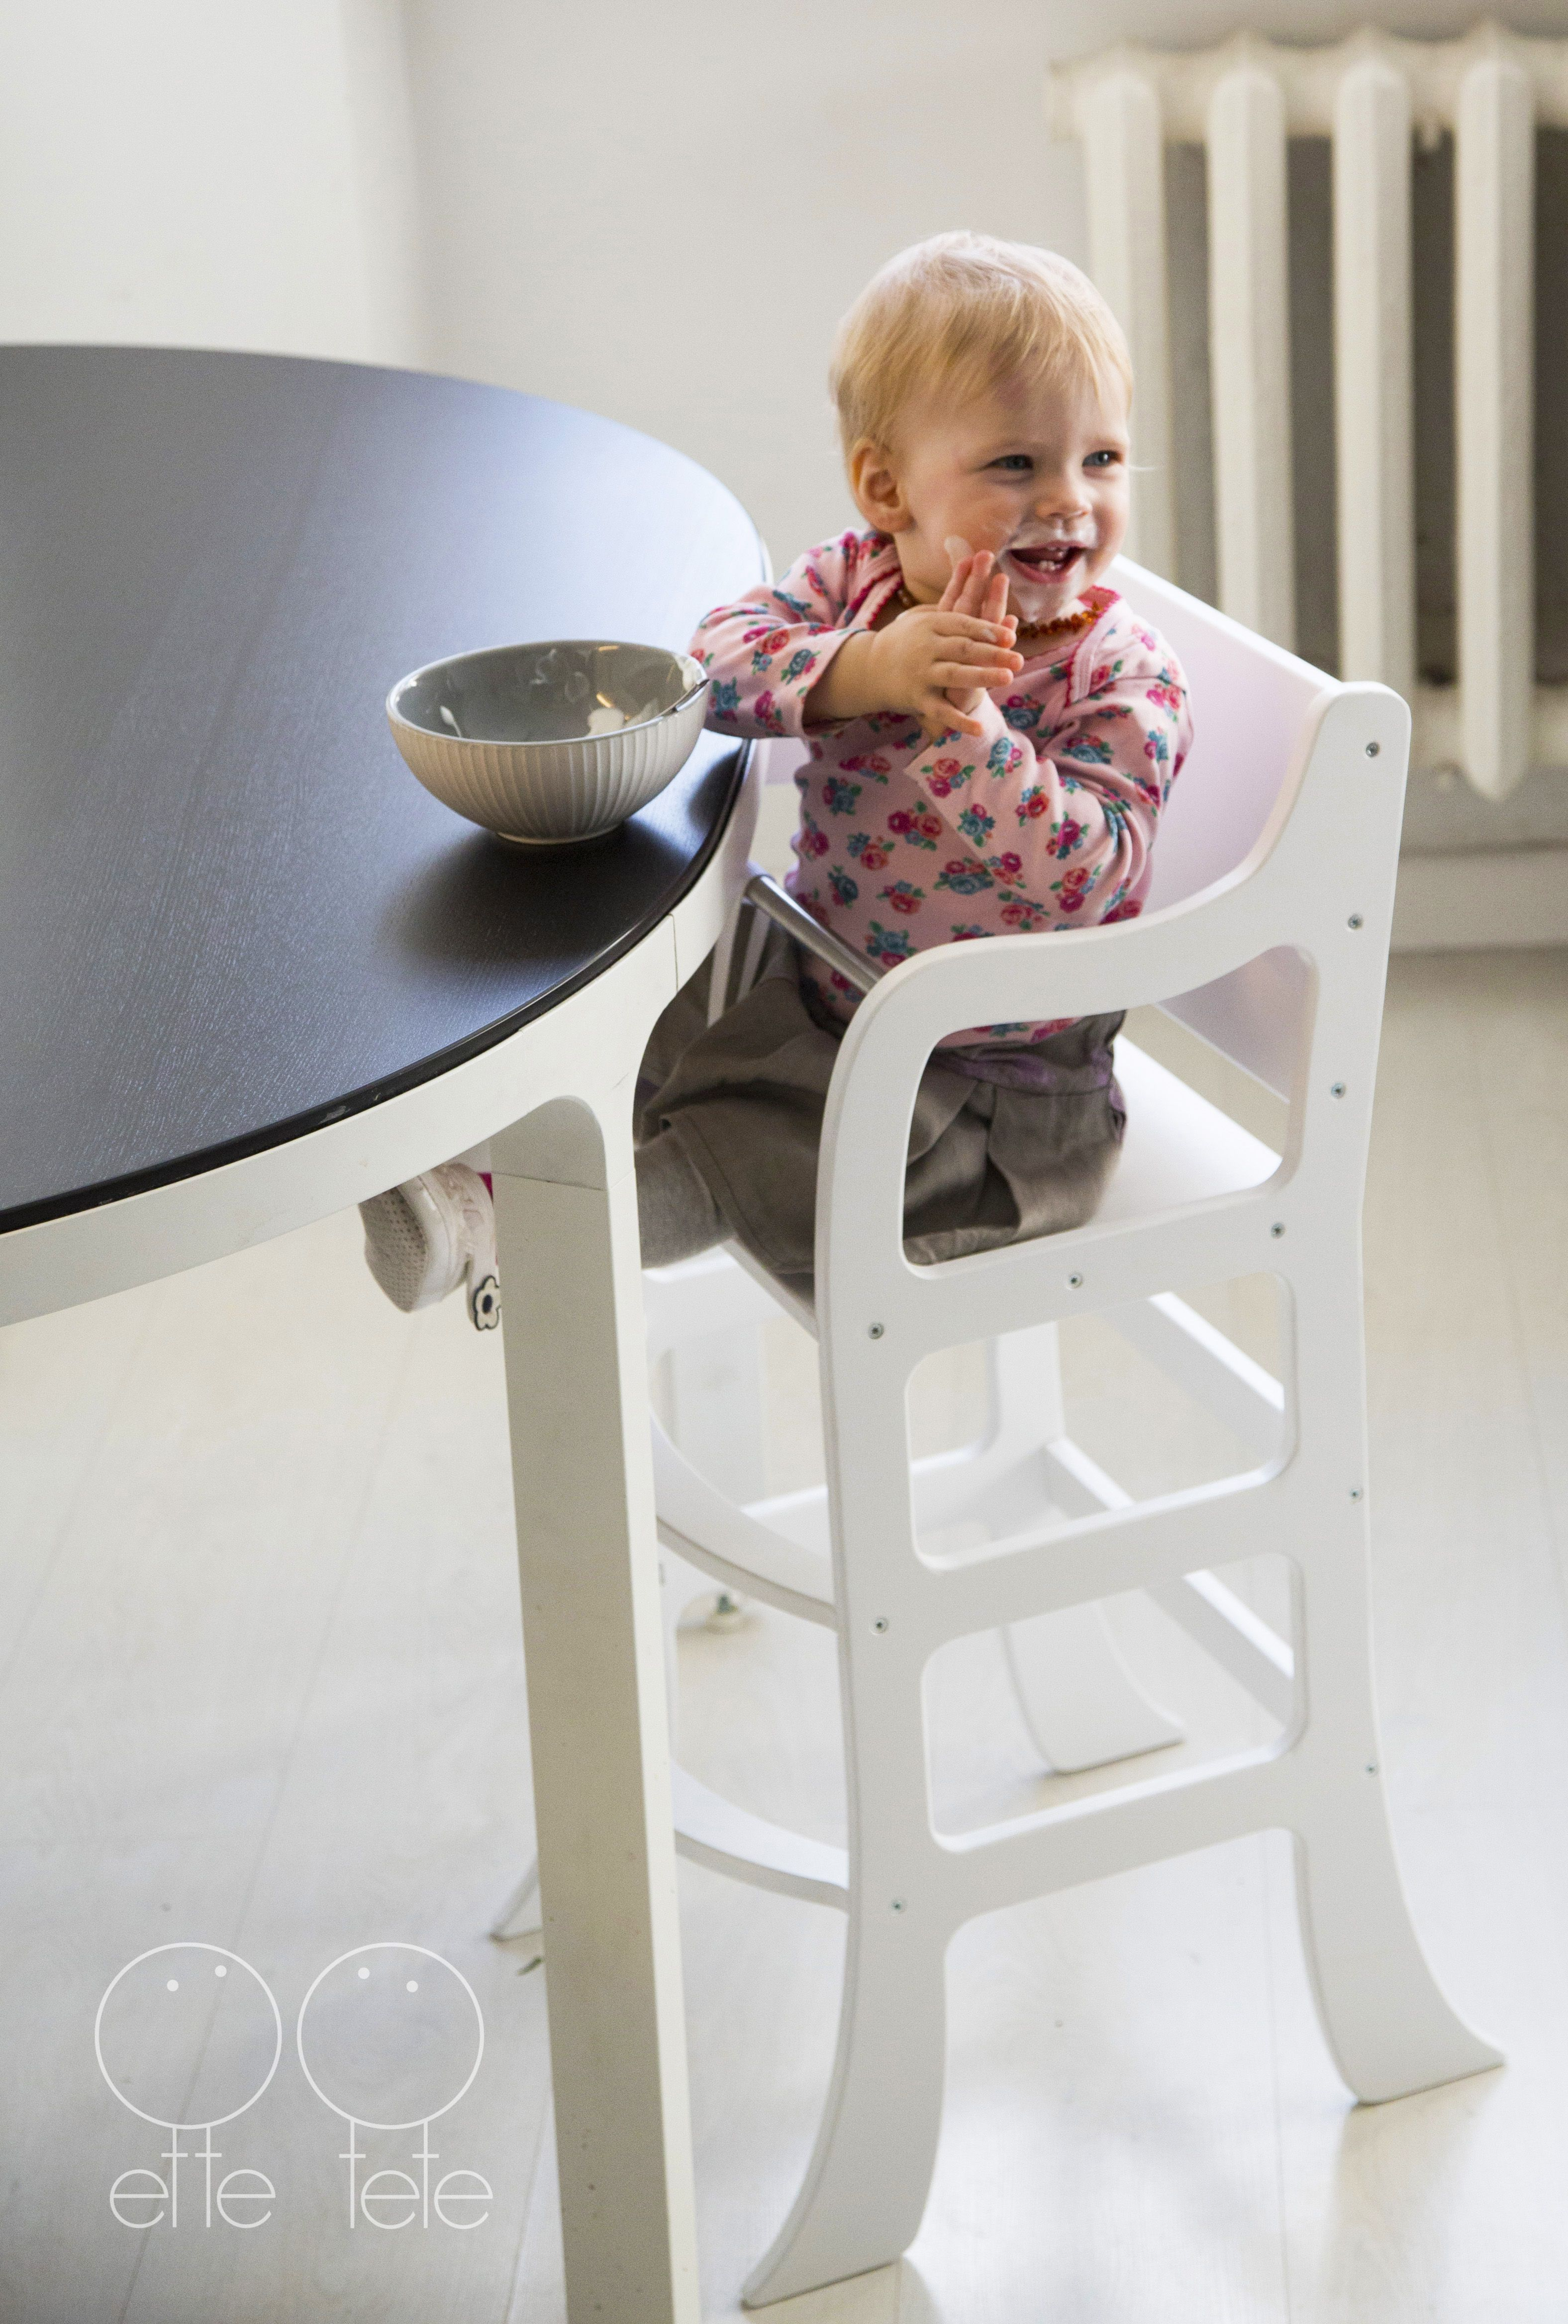 Kid S Highchair Feeding Chair Chair For Toddler Safety Seat For Baby S Meals Toddler Chair High Chair Baby High Chair